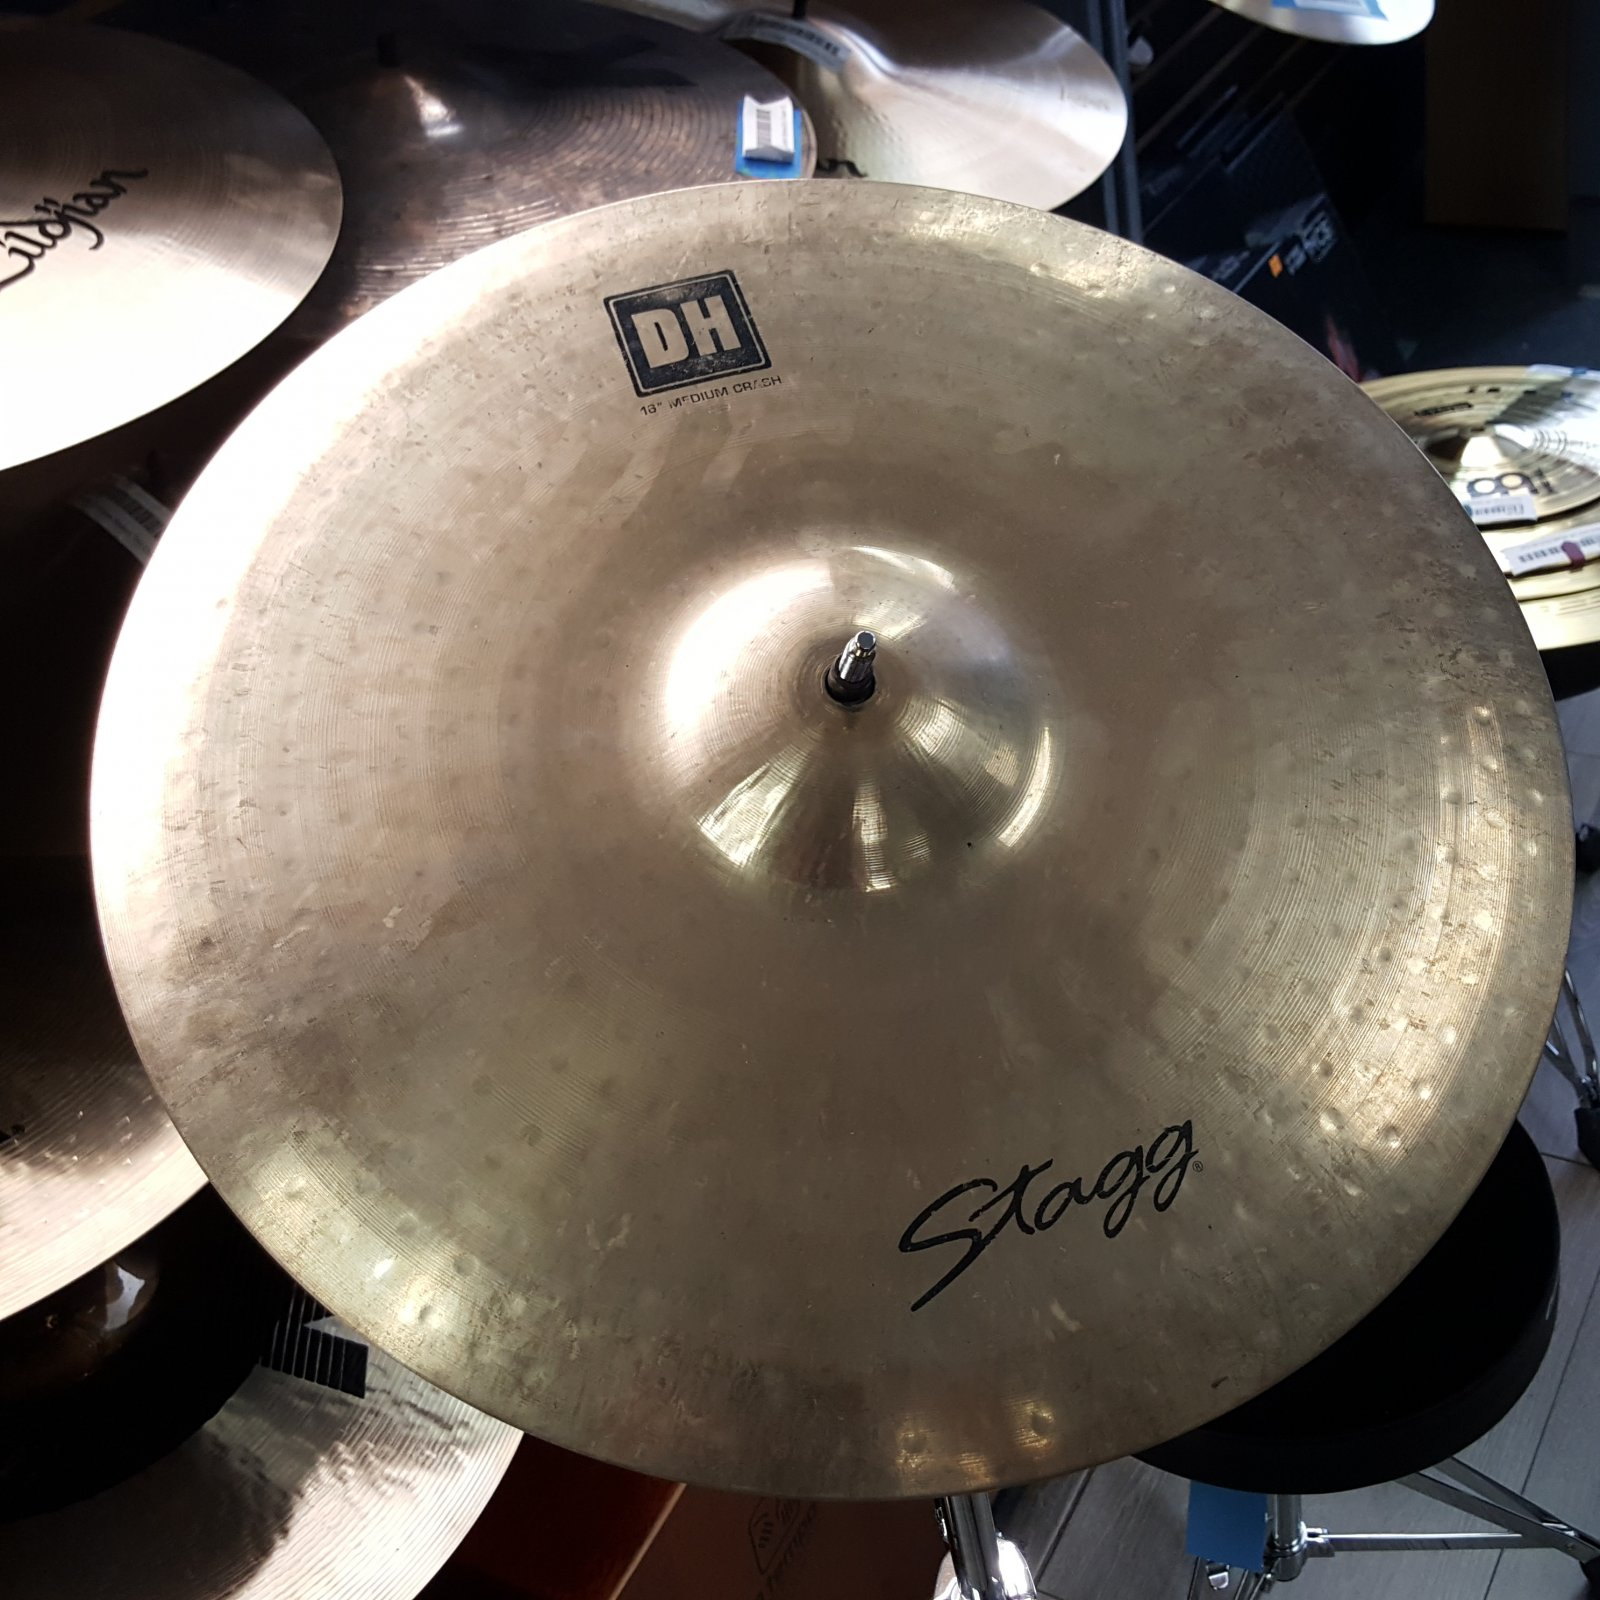 USED Stagg 16 DH Medium Crash Cymbal